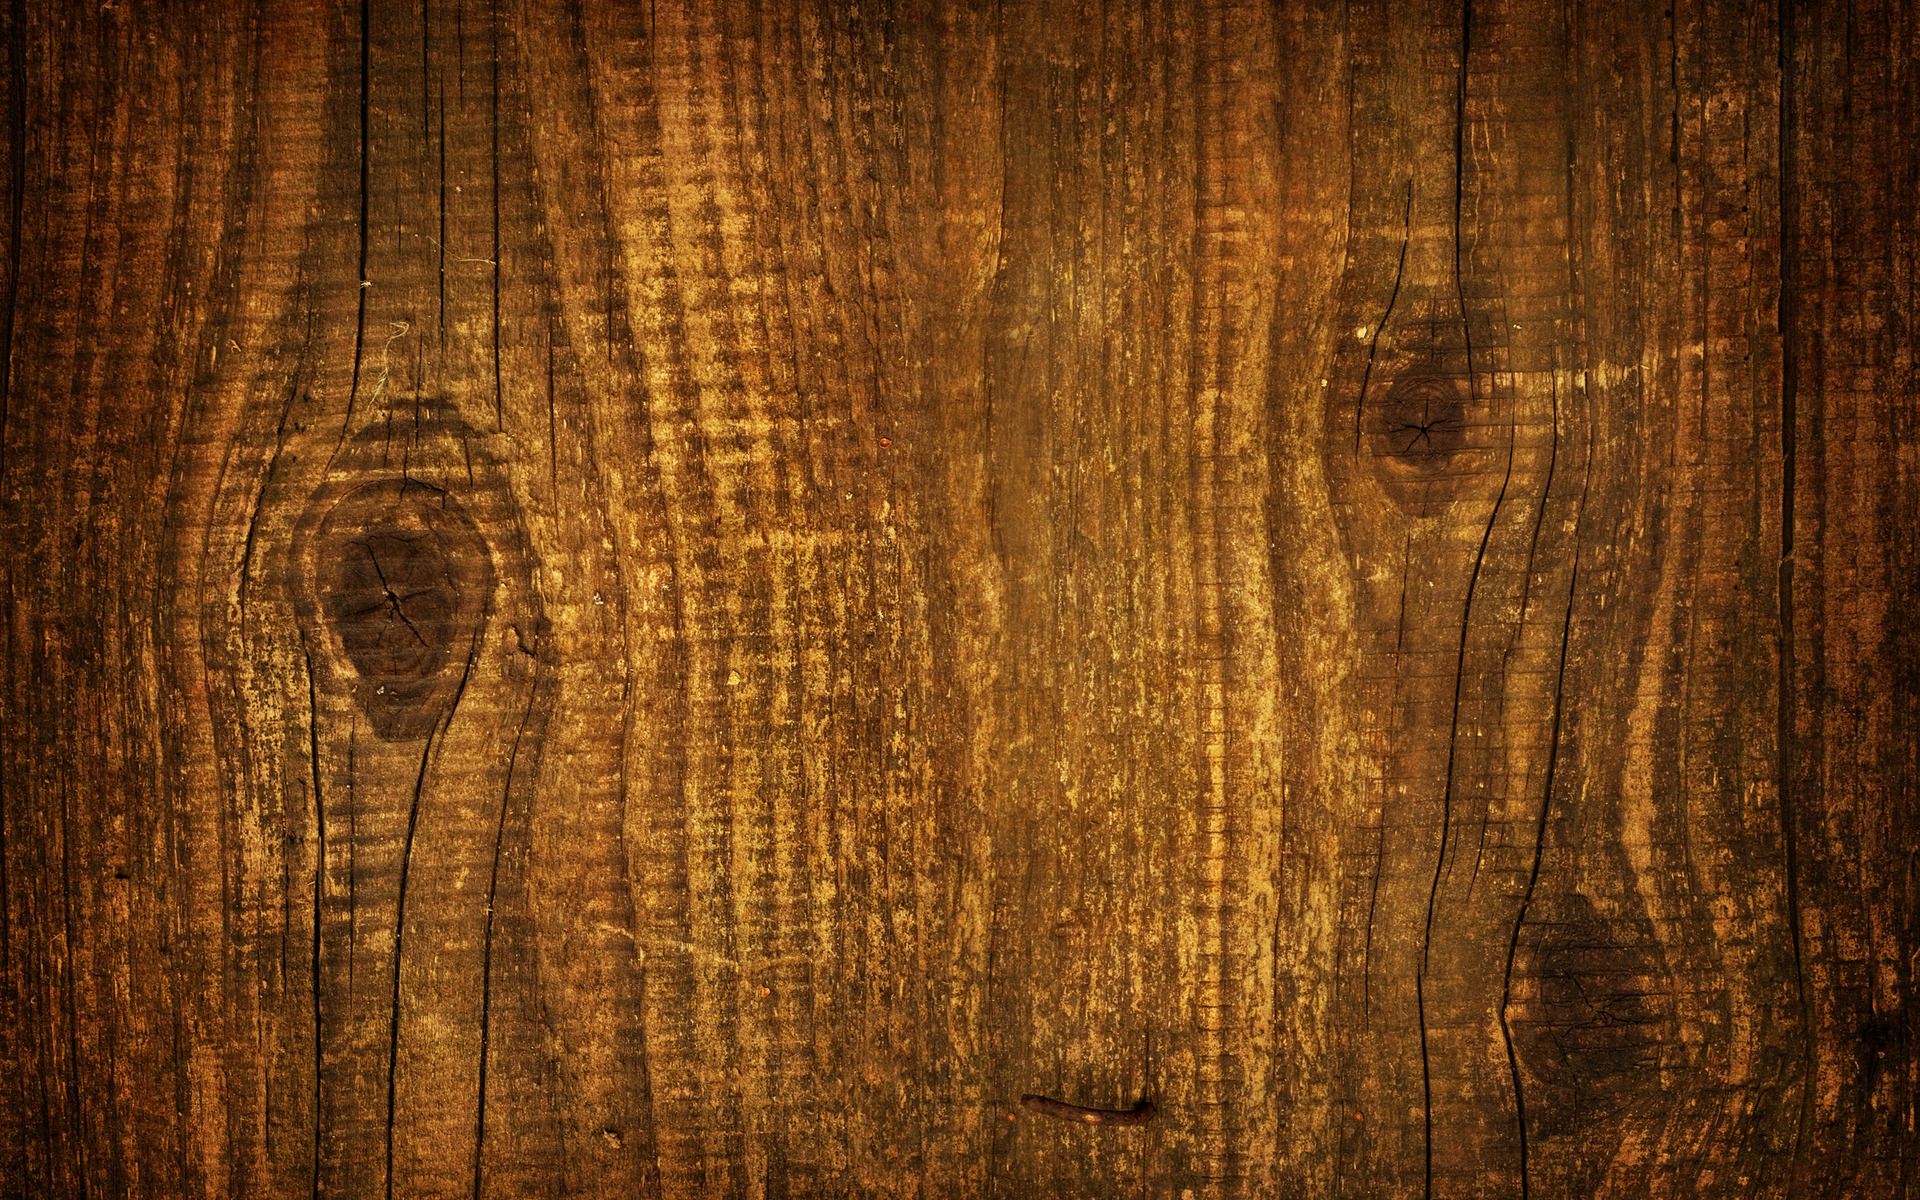 tree wood, planking, download photo, image, background